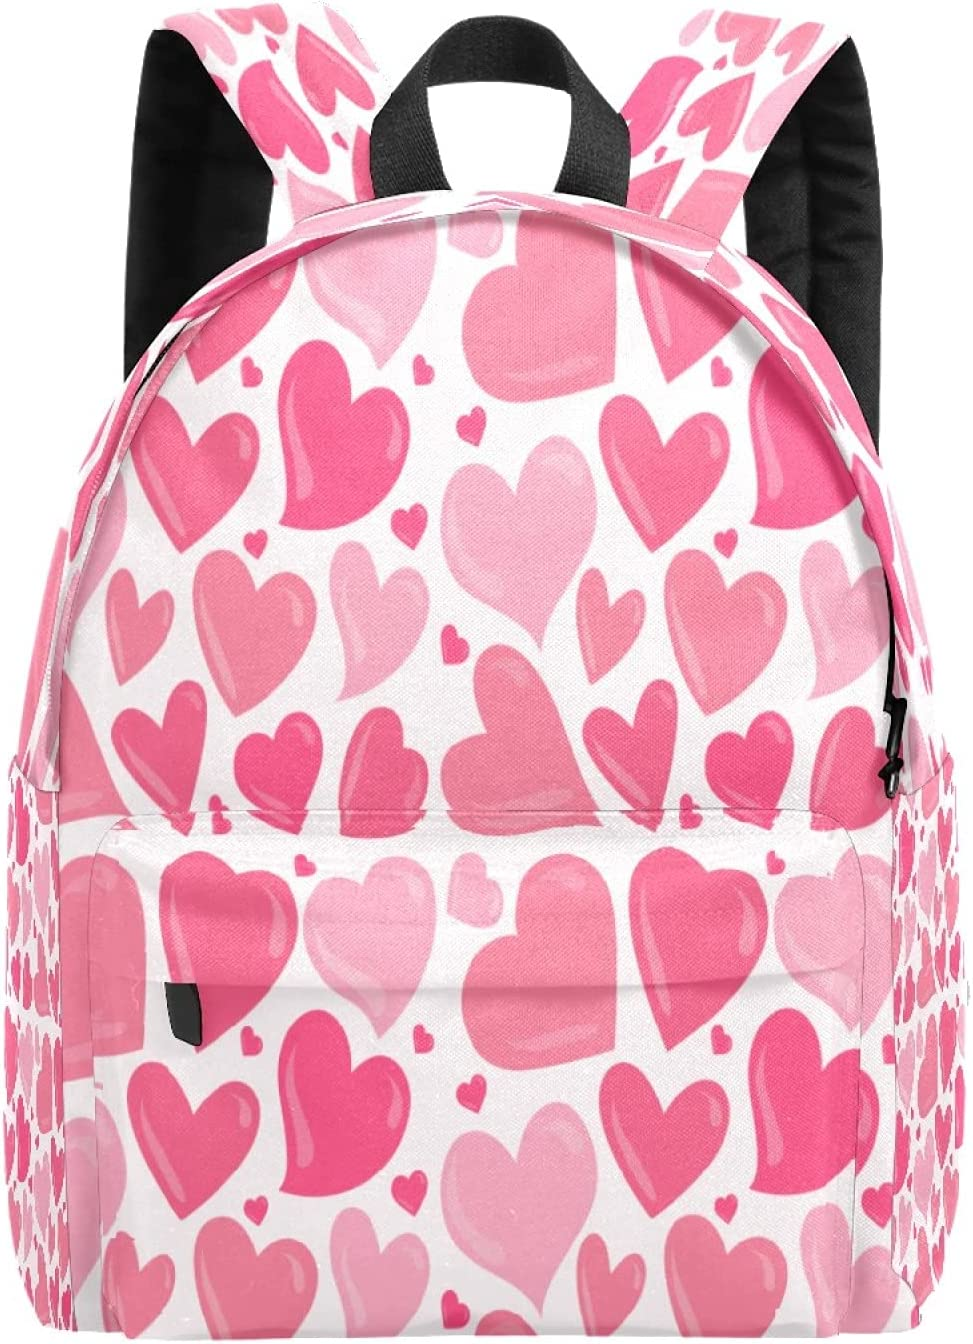 School Ranking TOP2 Ranking TOP13 Bag Backpack College Day Love Valentine's Pink